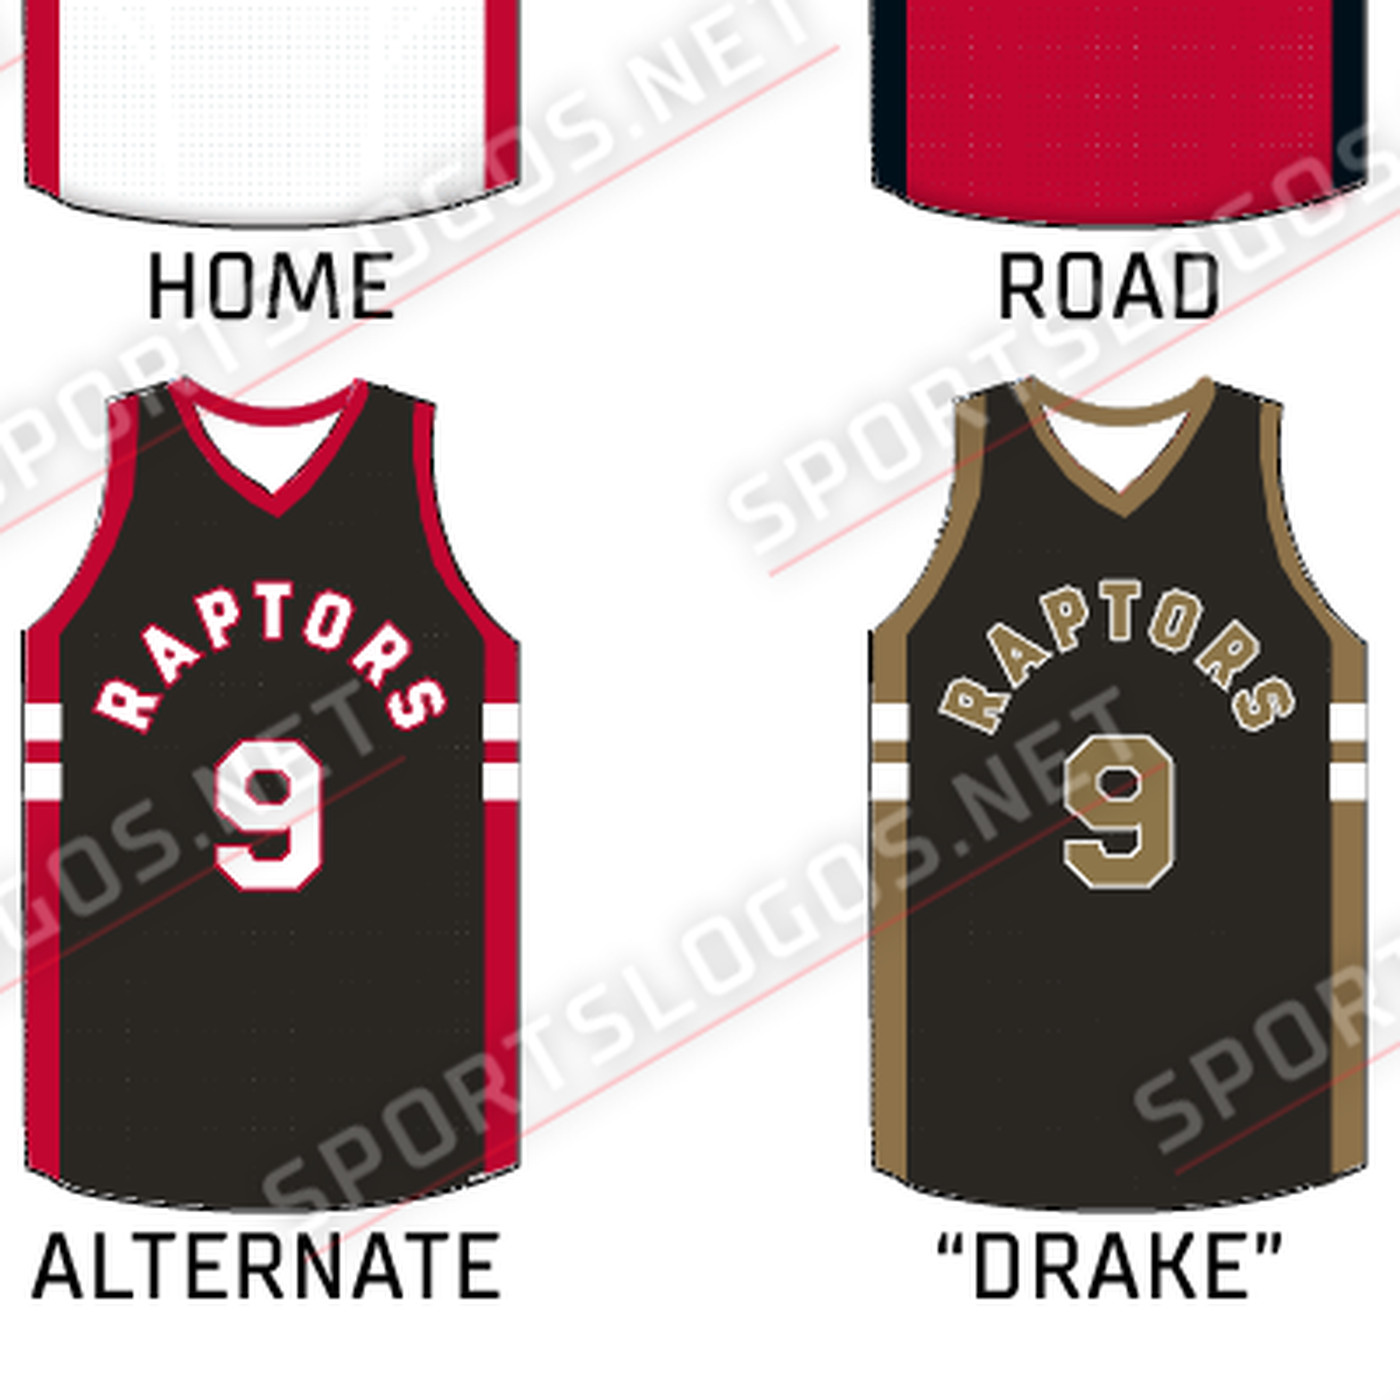 6dc71ae550f Toronto Raptors leak new Drake-inspired alternate jerseys - SBNation.com